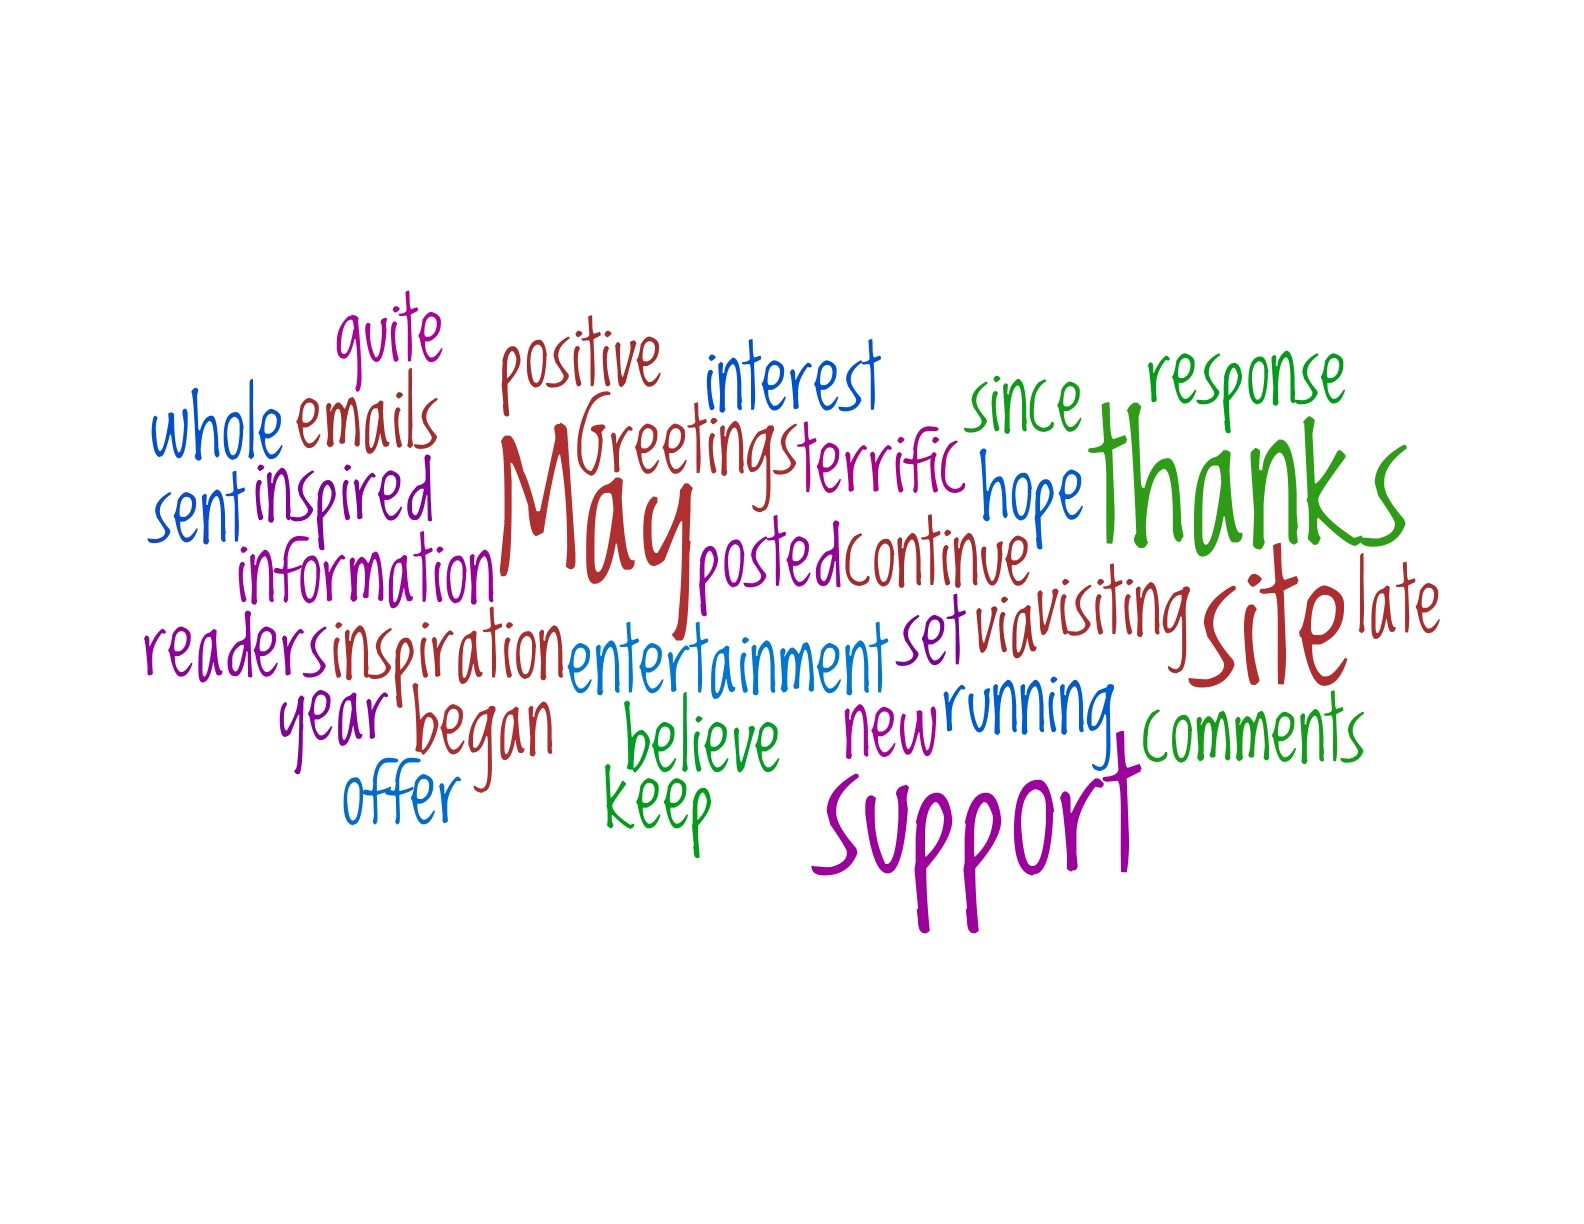 Employee Anniversary Quotes http://anne-whitaker.com/coming-up-soon-2/wordle-5-09-2/